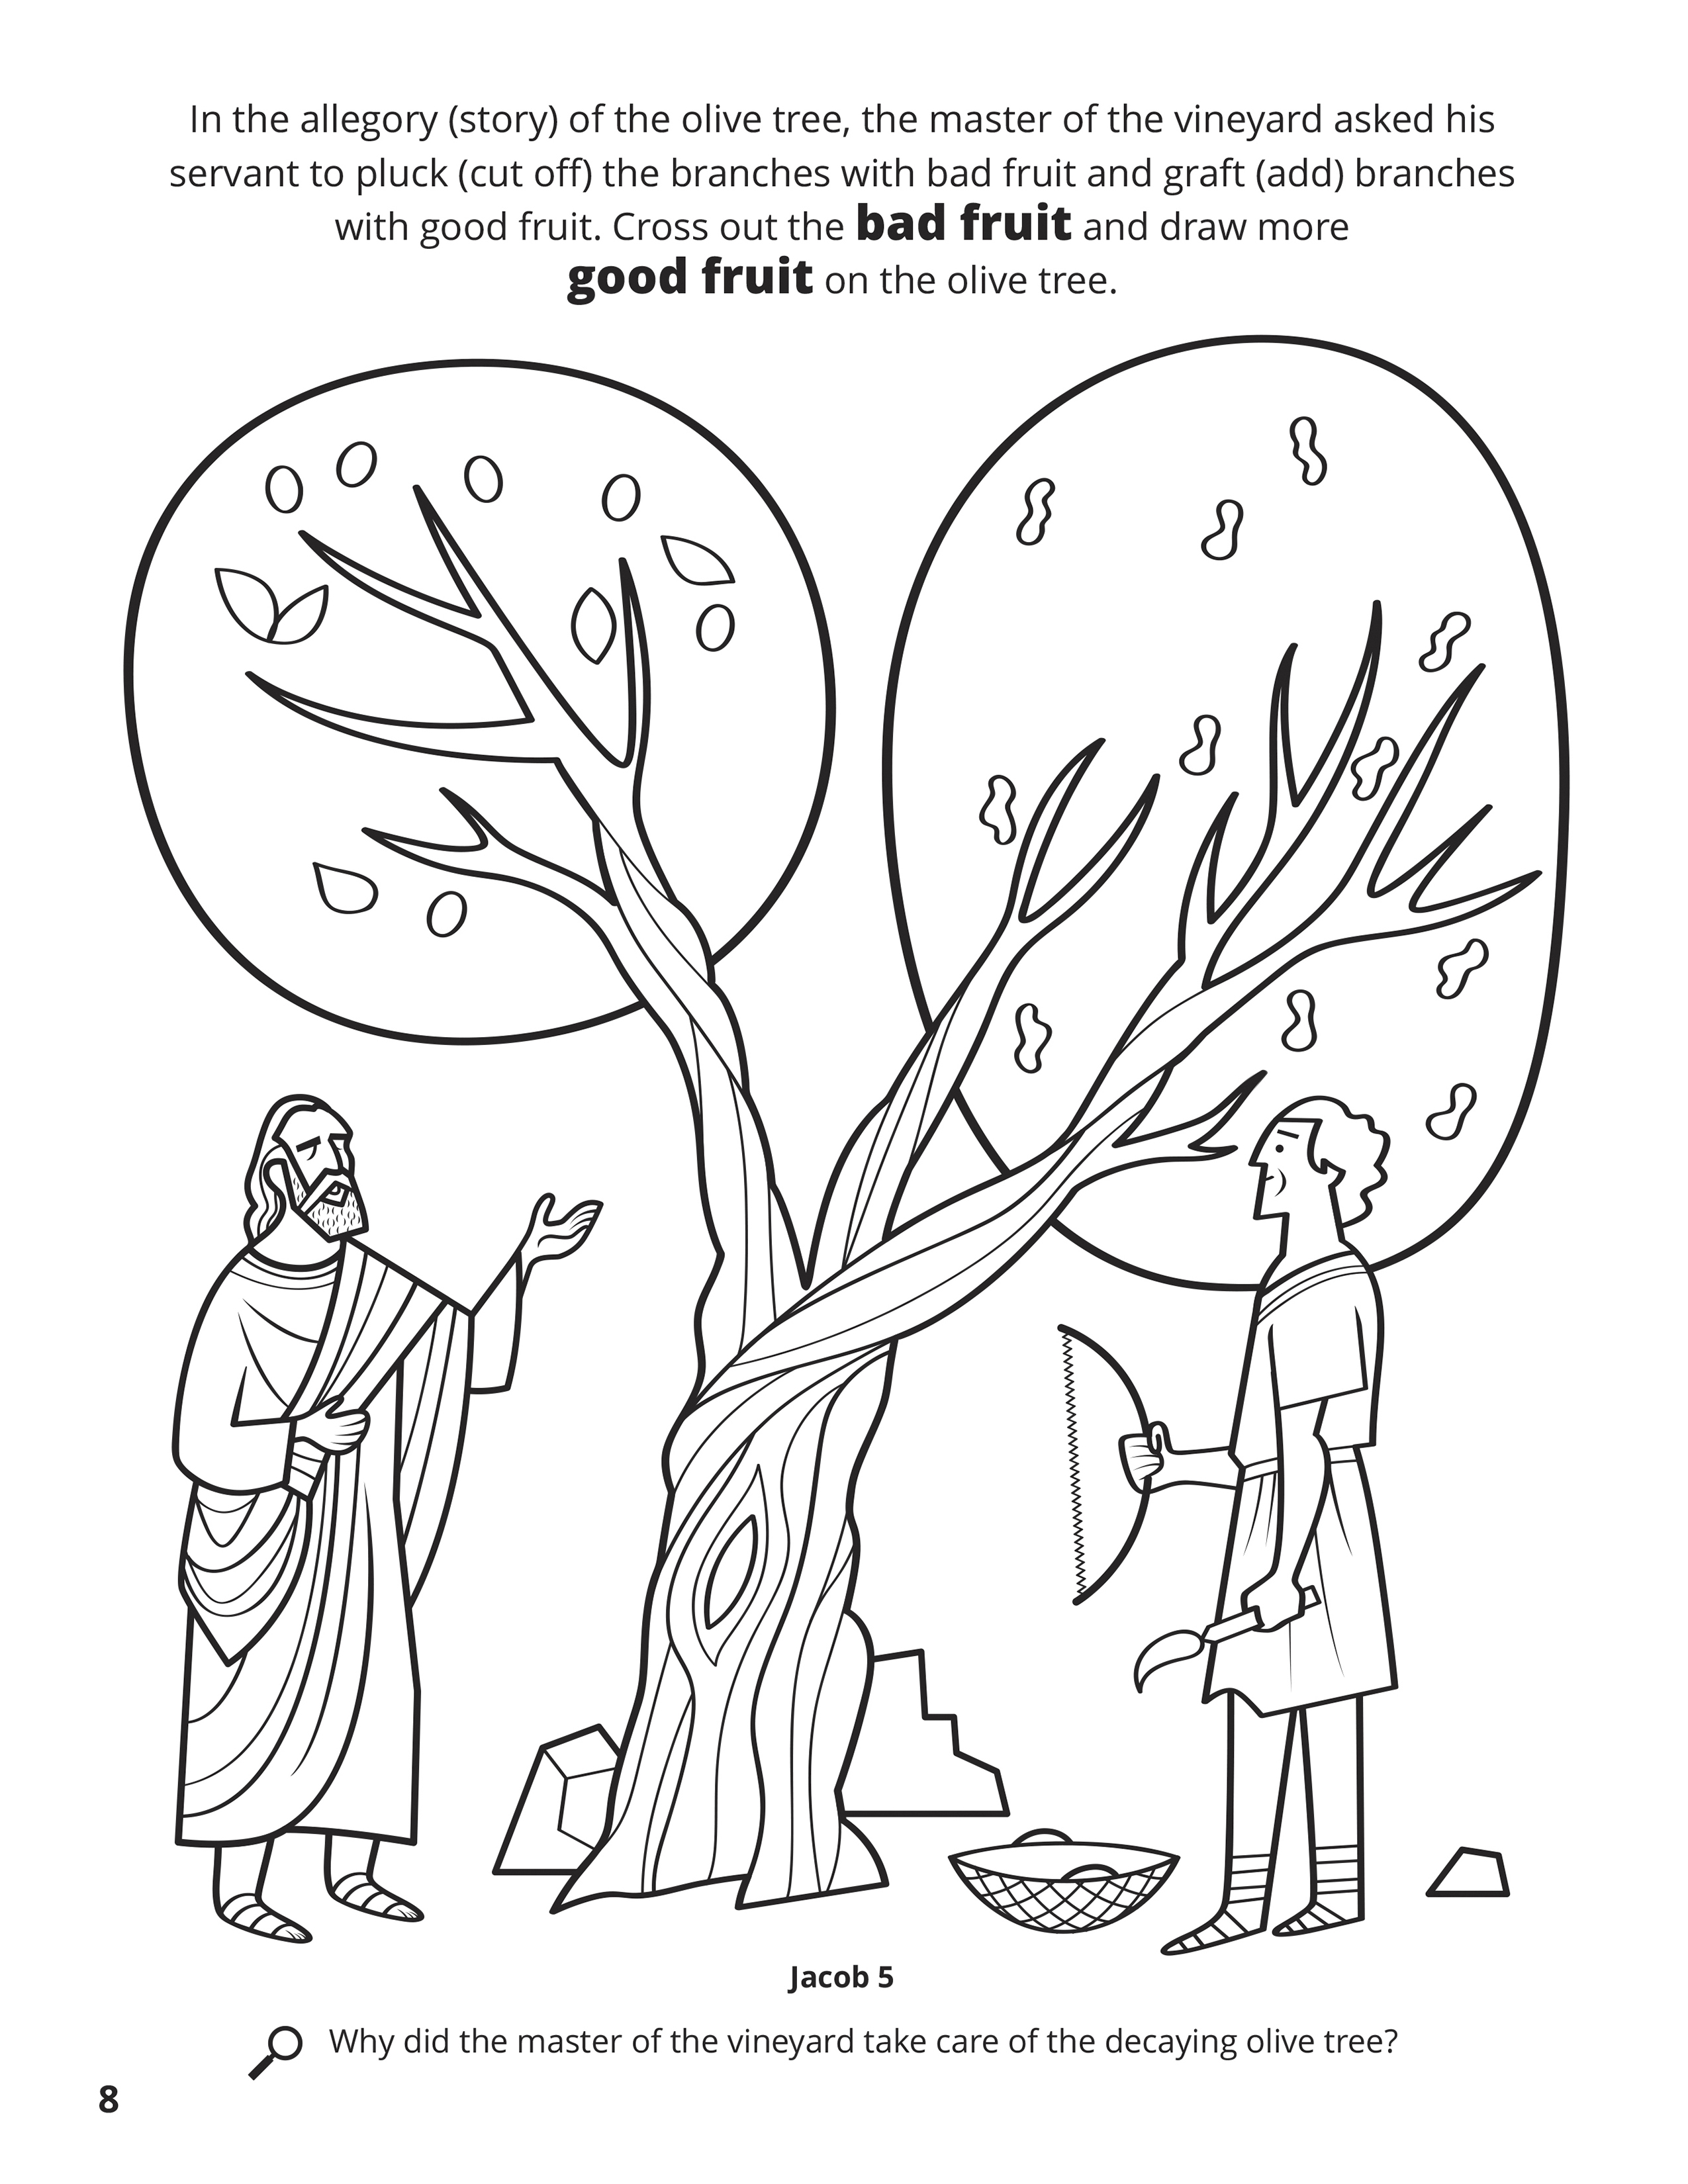 In the allegory (story) of the olive tree, the master of the vineyard asked his servant to pluck (cut off) the branches with bad fruit and graft (add) branches with good fruit. Cross out the bad fruit and draw more good fruit on the olive tree. Location in the Scriptures: Jacob 5. Search the Scriptures: Why did the master of the vineyard take care of the decaying olive tree?